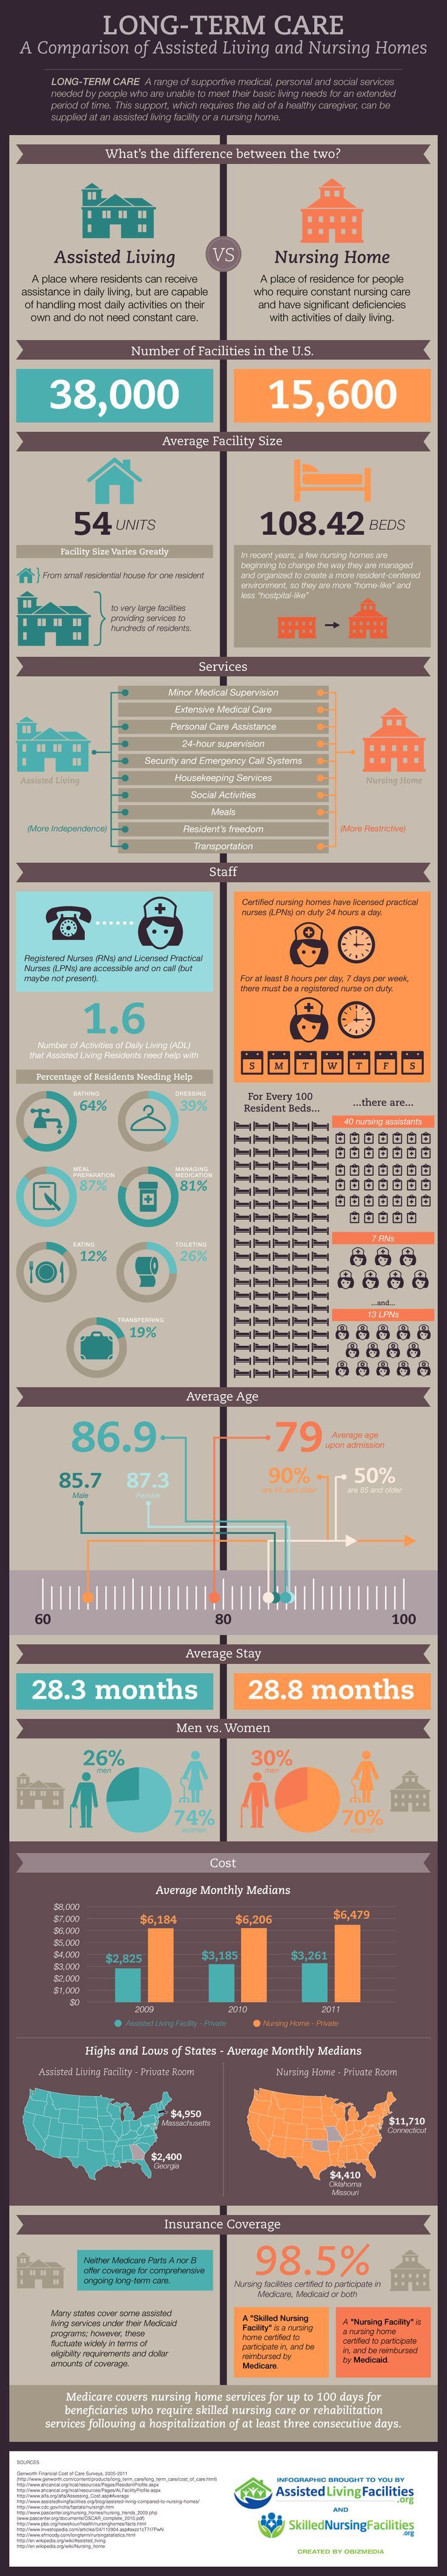 This infographic provides a detailed comparison of assisted living vs. nursing homes. It provides a comparison for care and cost of each place.